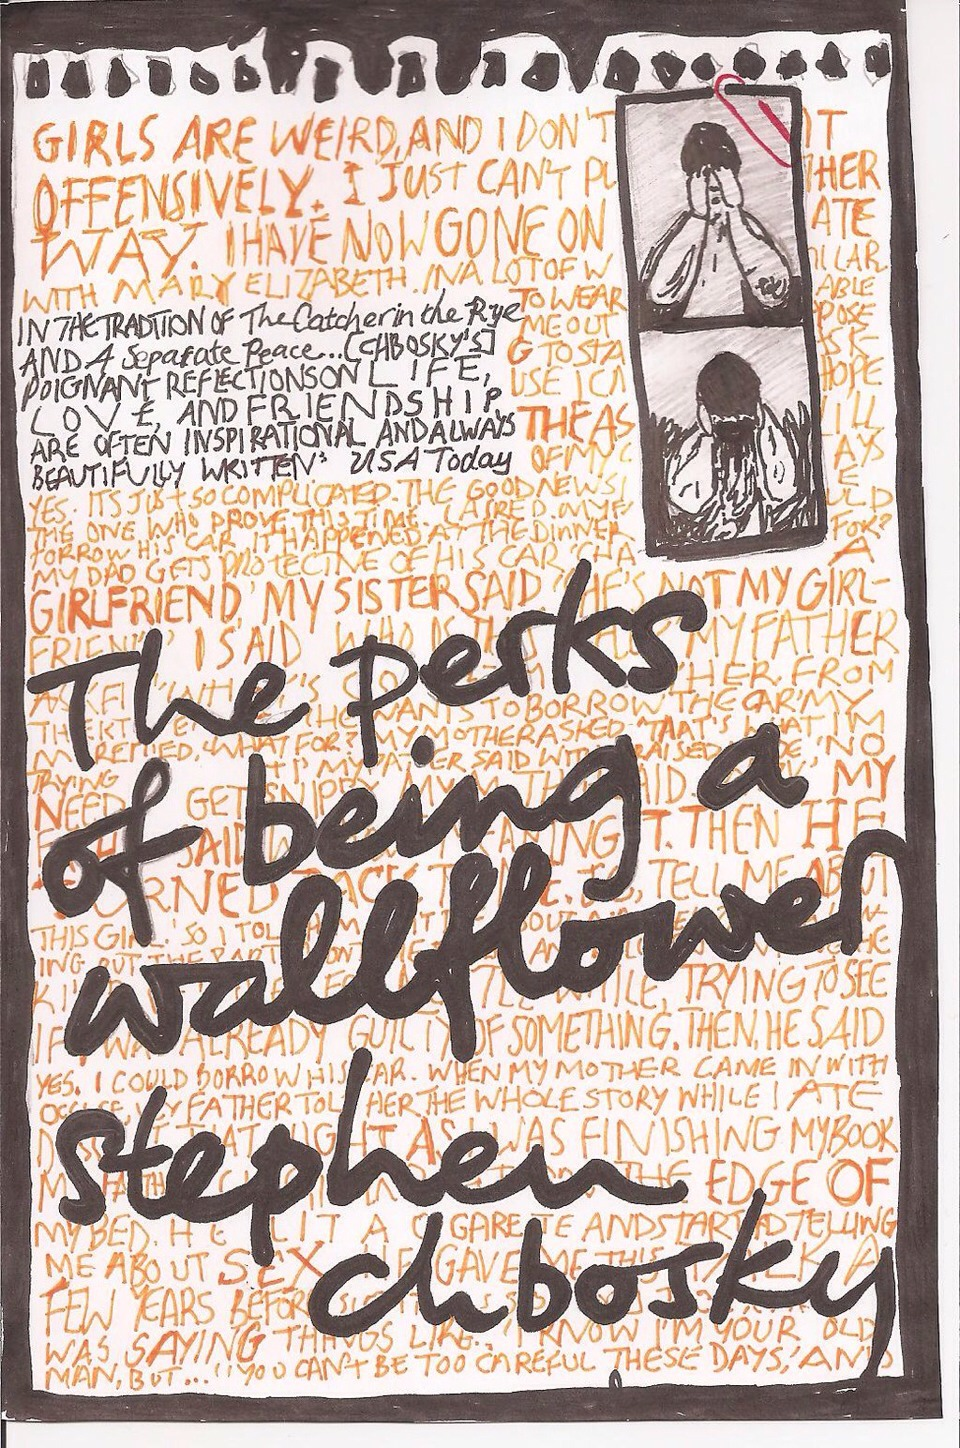 5. The Perks of Being a Wallflower - Stephen Chbosky